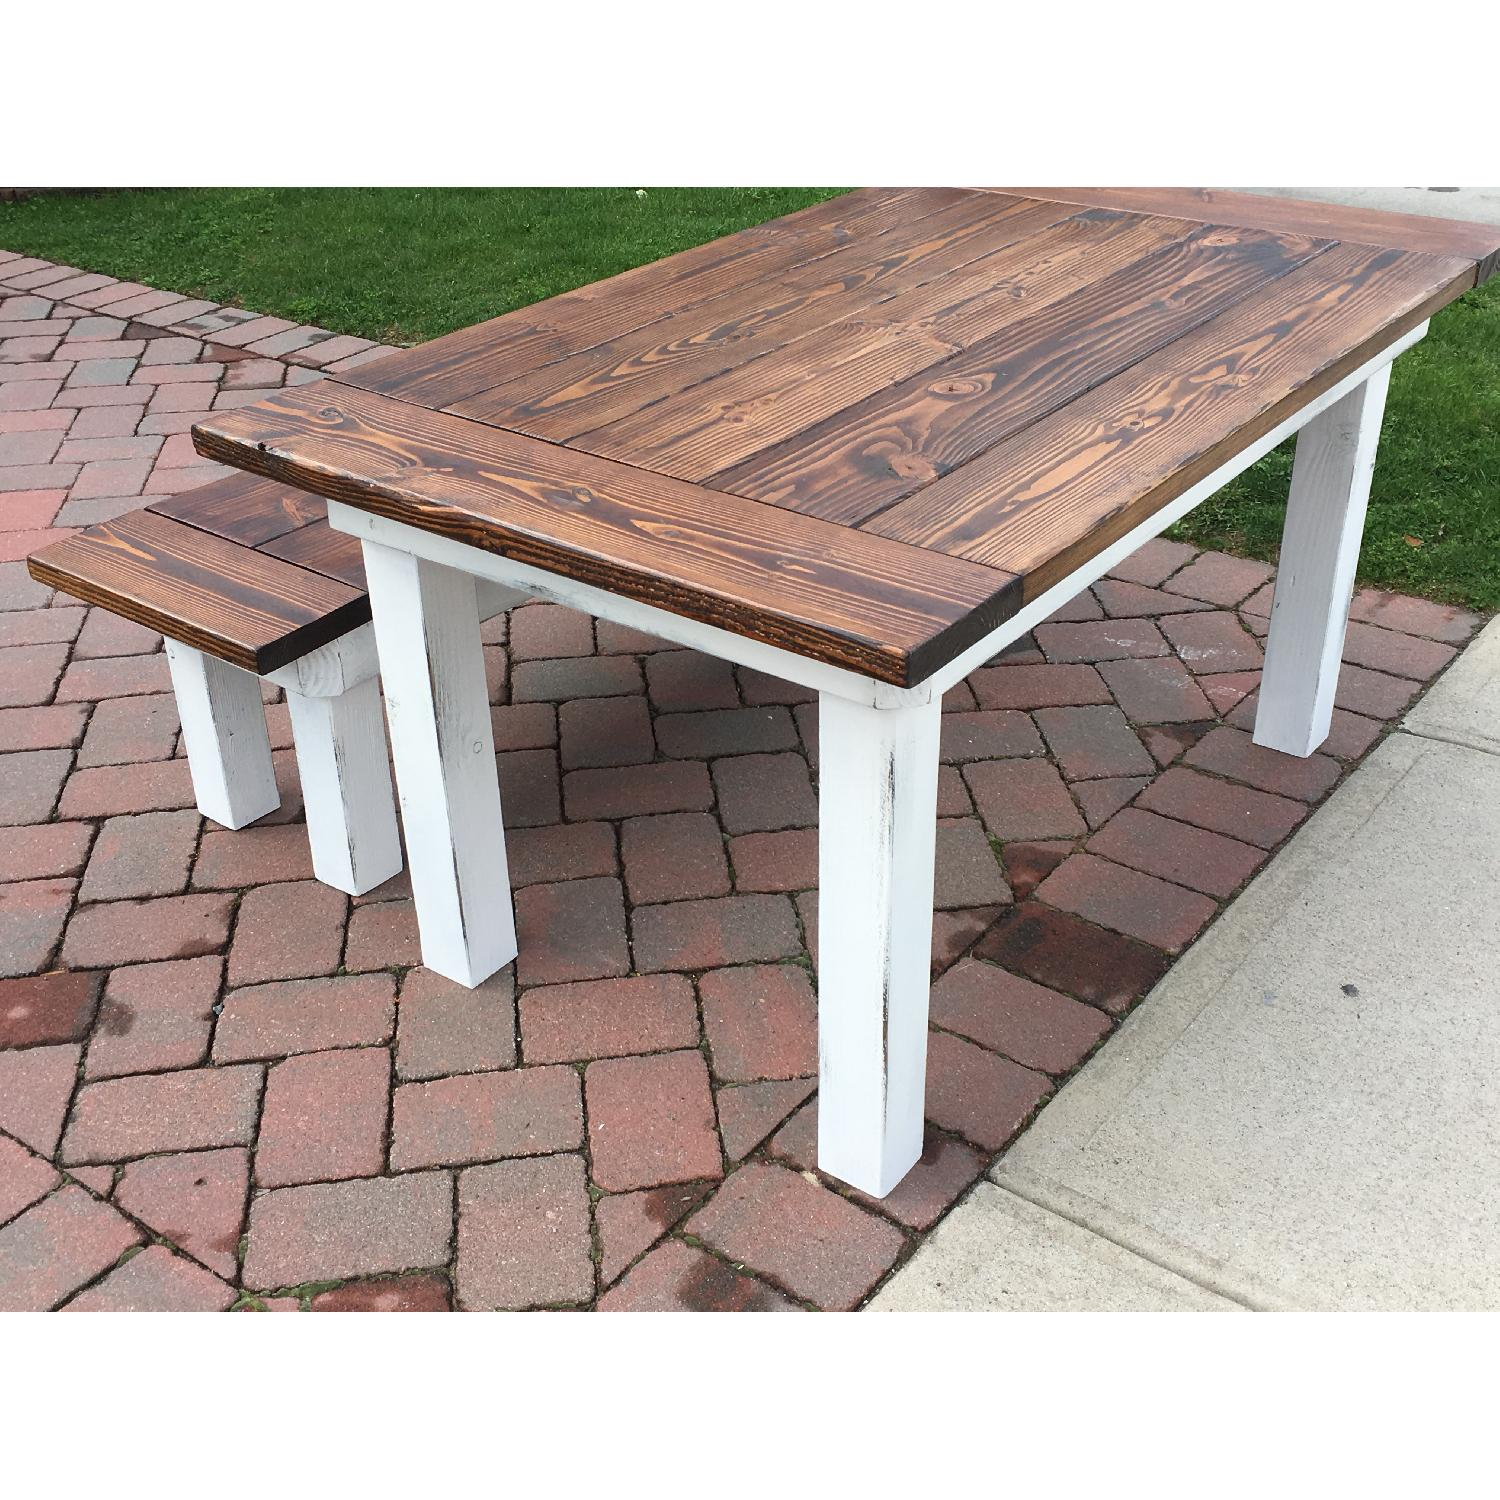 Rustic Farm Table w/ 1 Bench - image-5